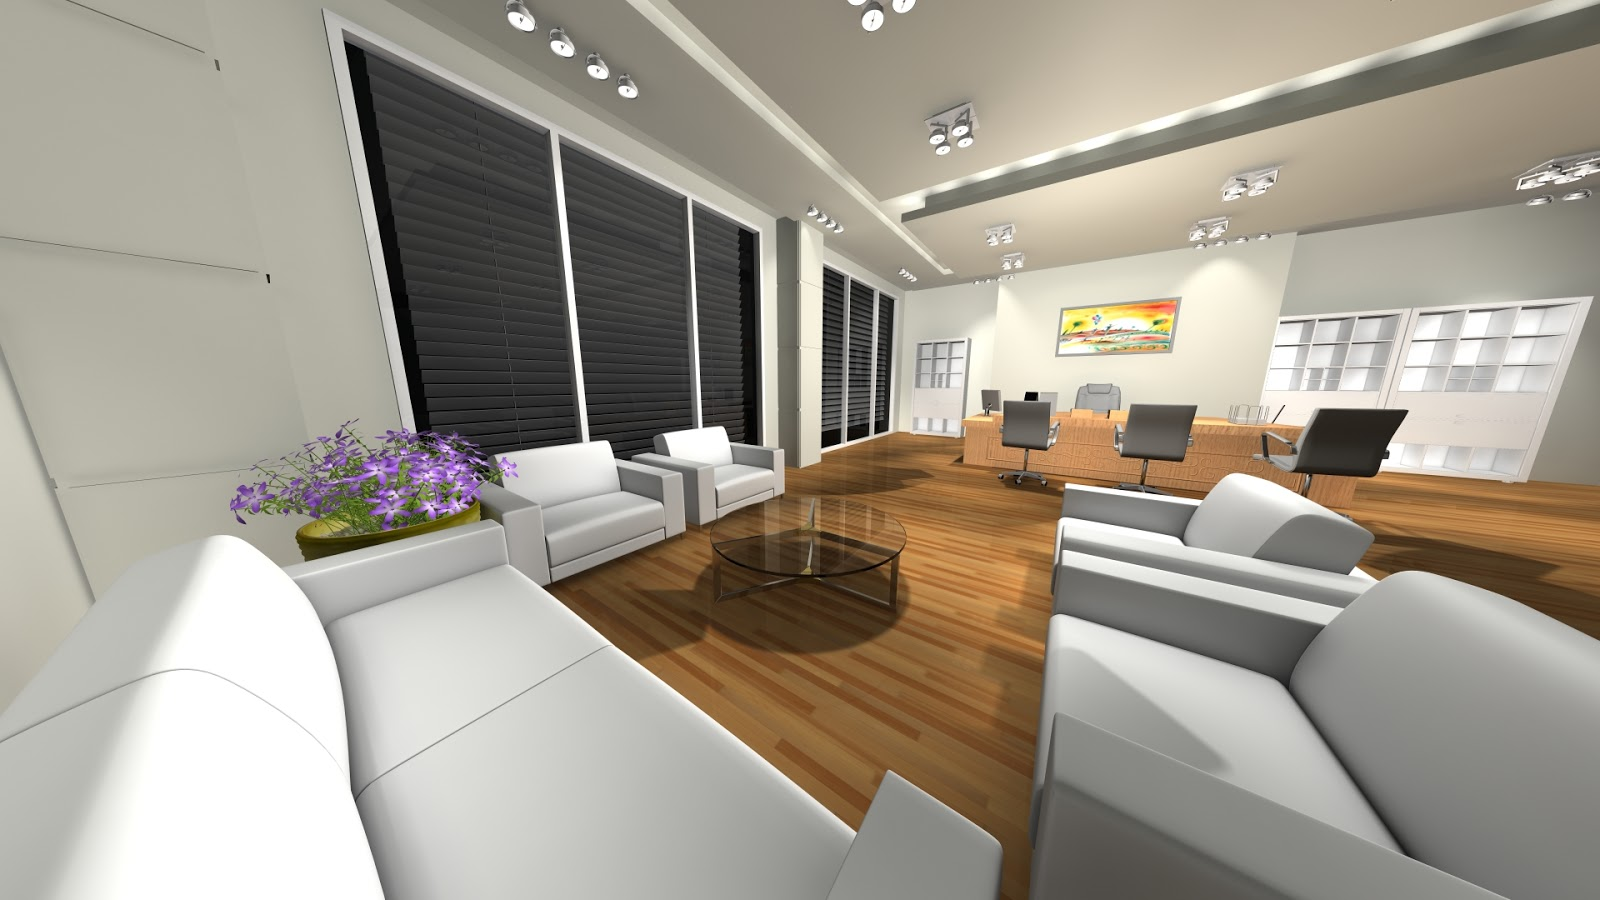 Sajid designer office room 3d interior design 3ds max 3d interior design online